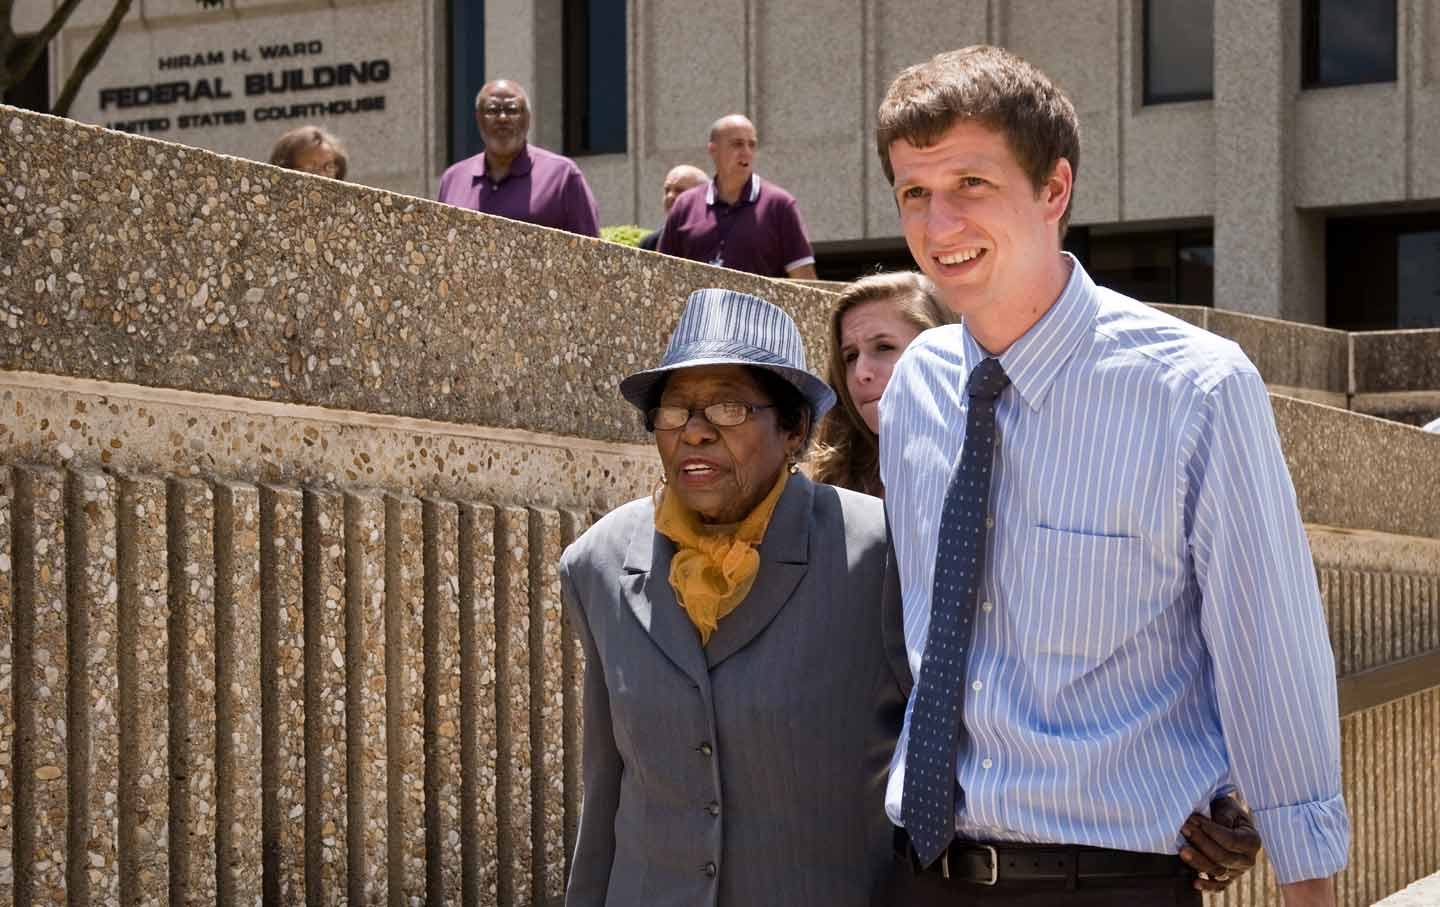 Winston Salem Escorts >> The 94 Year Old Civil Rights Pioneer Who Is Now Challenging North